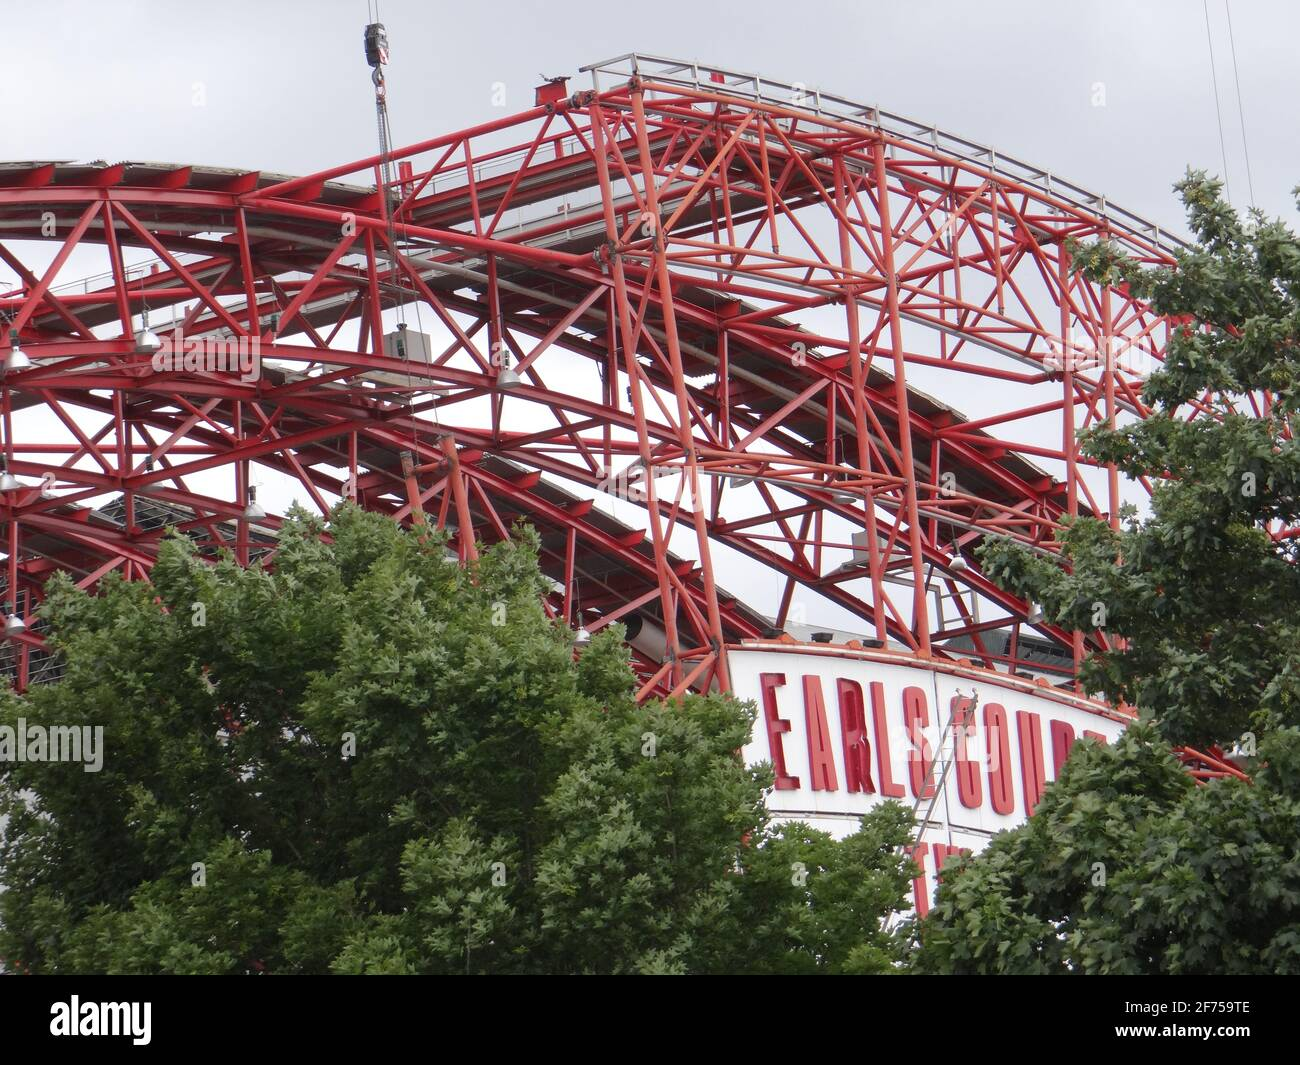 Demolishing Earl's court TWO exhibition centre in London, UK Stock Photo